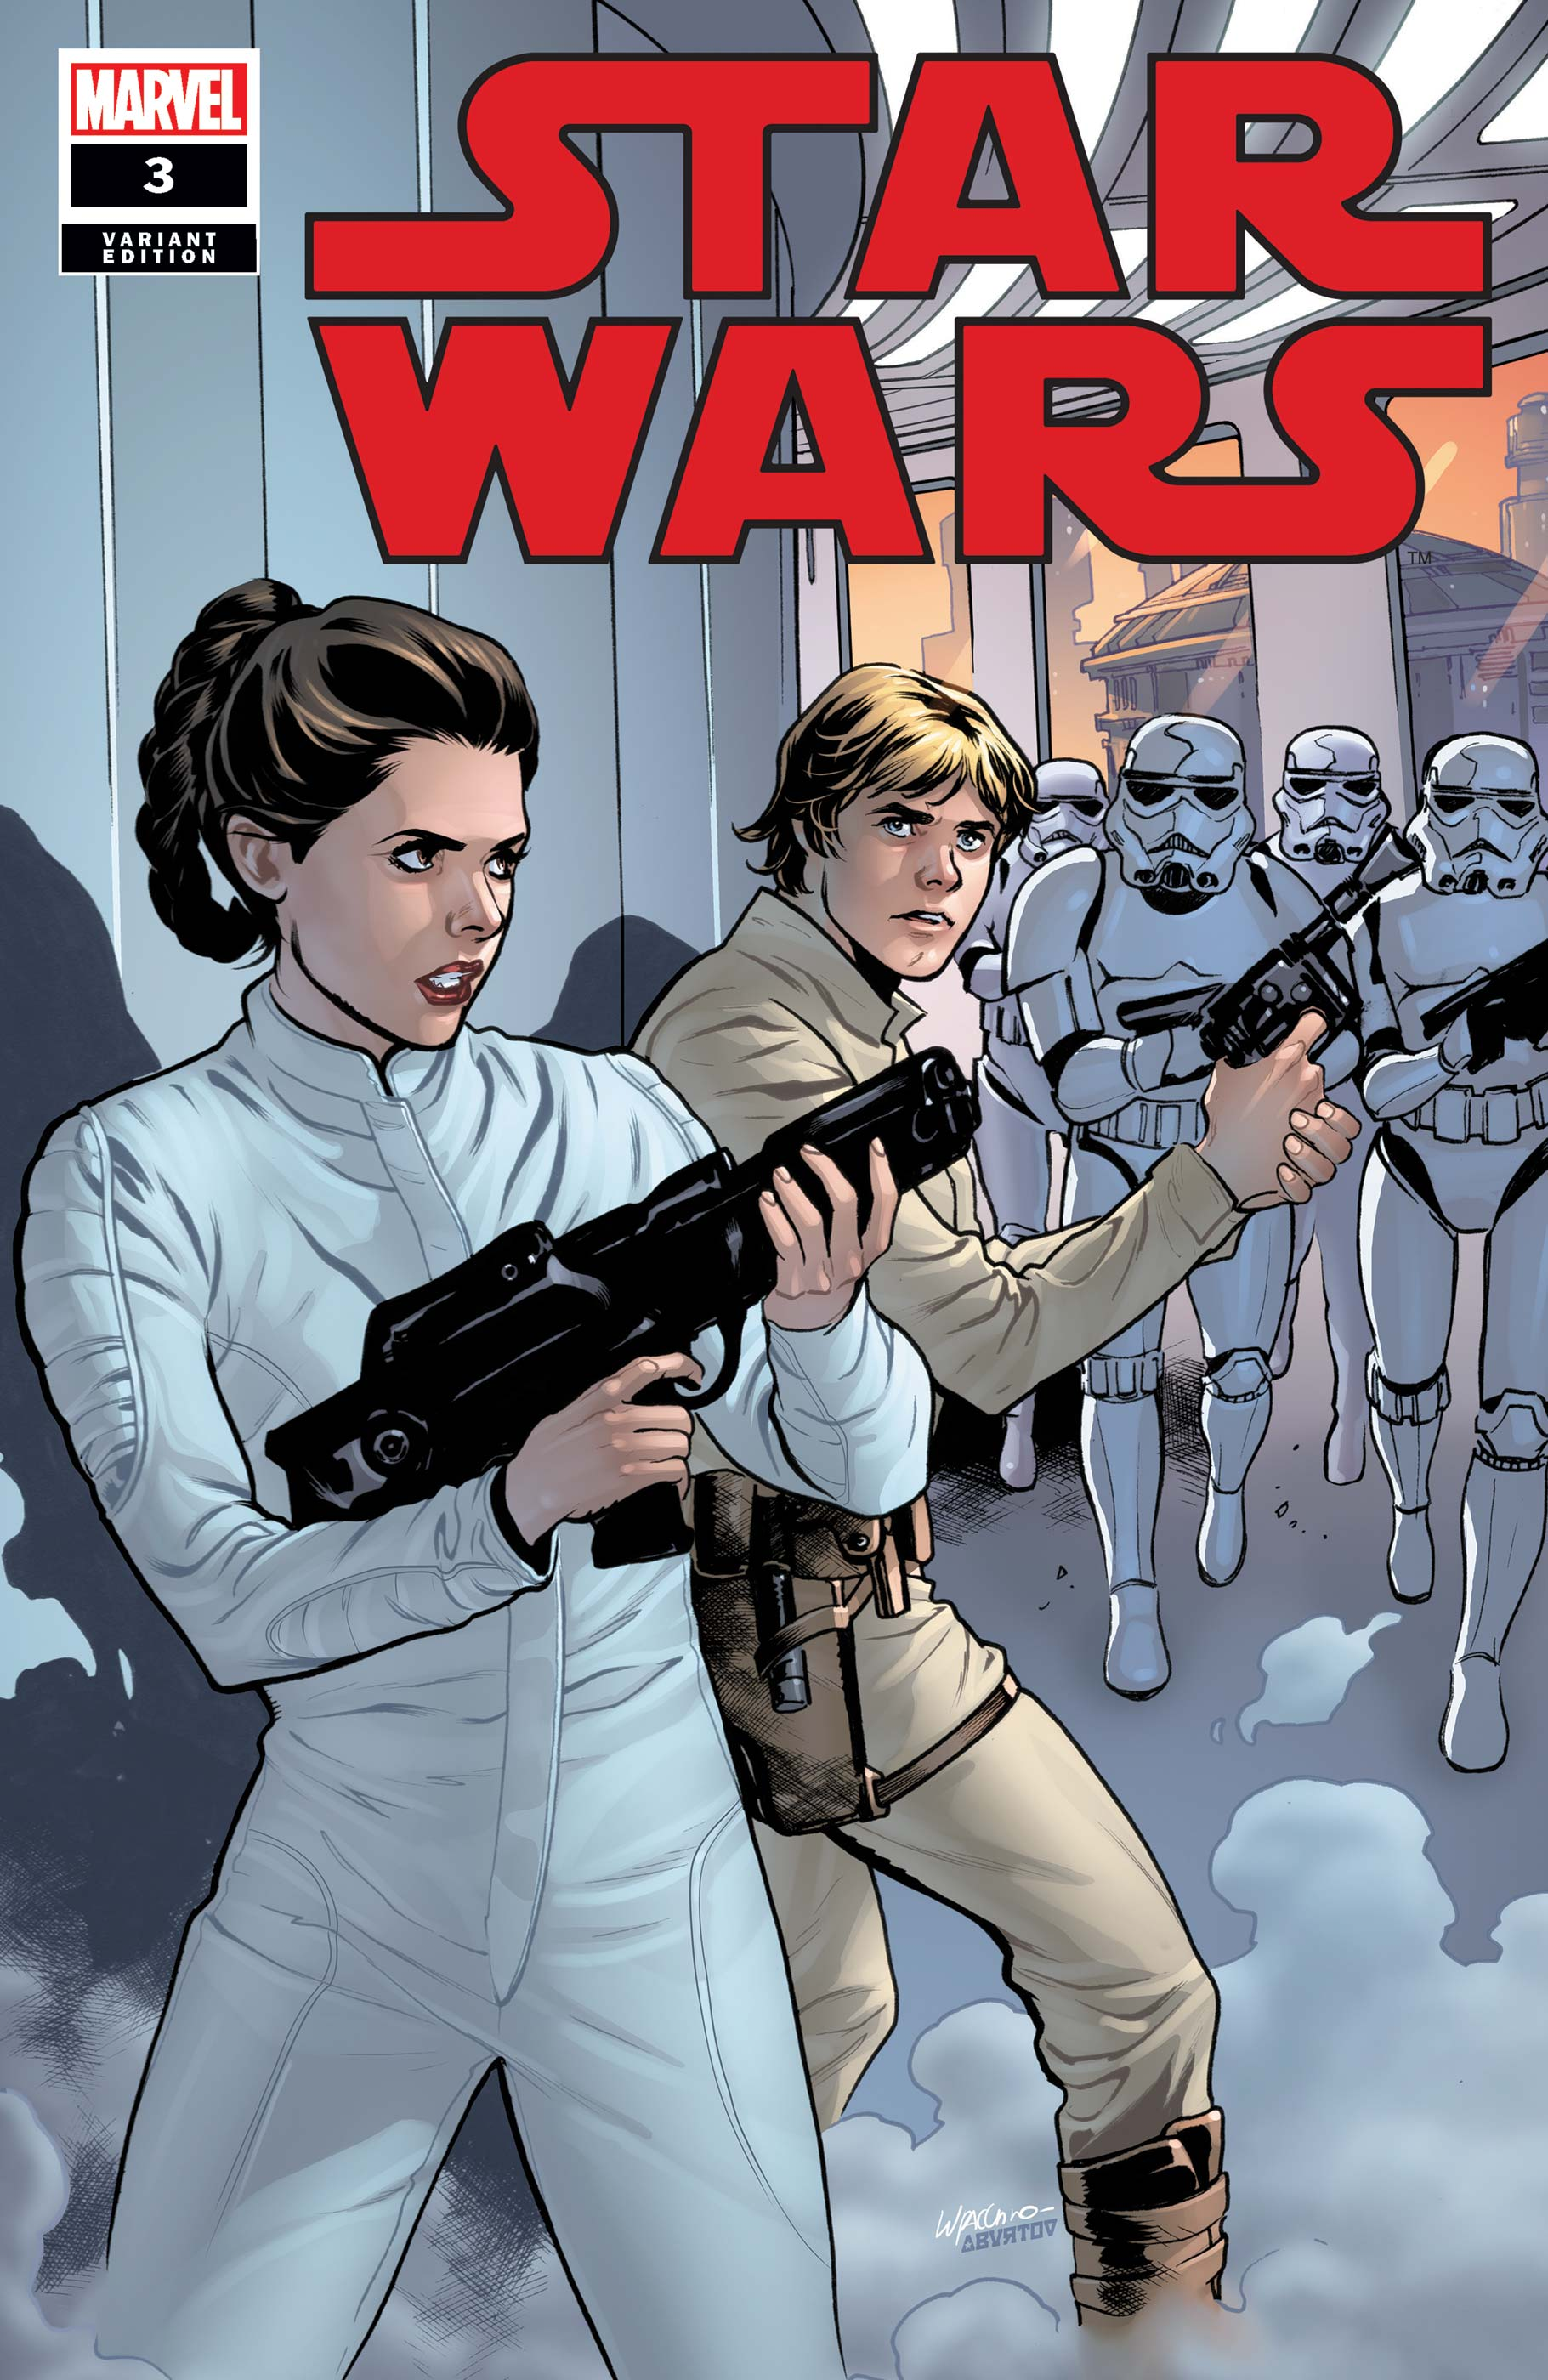 Star Wars (2020) #3 Cover2